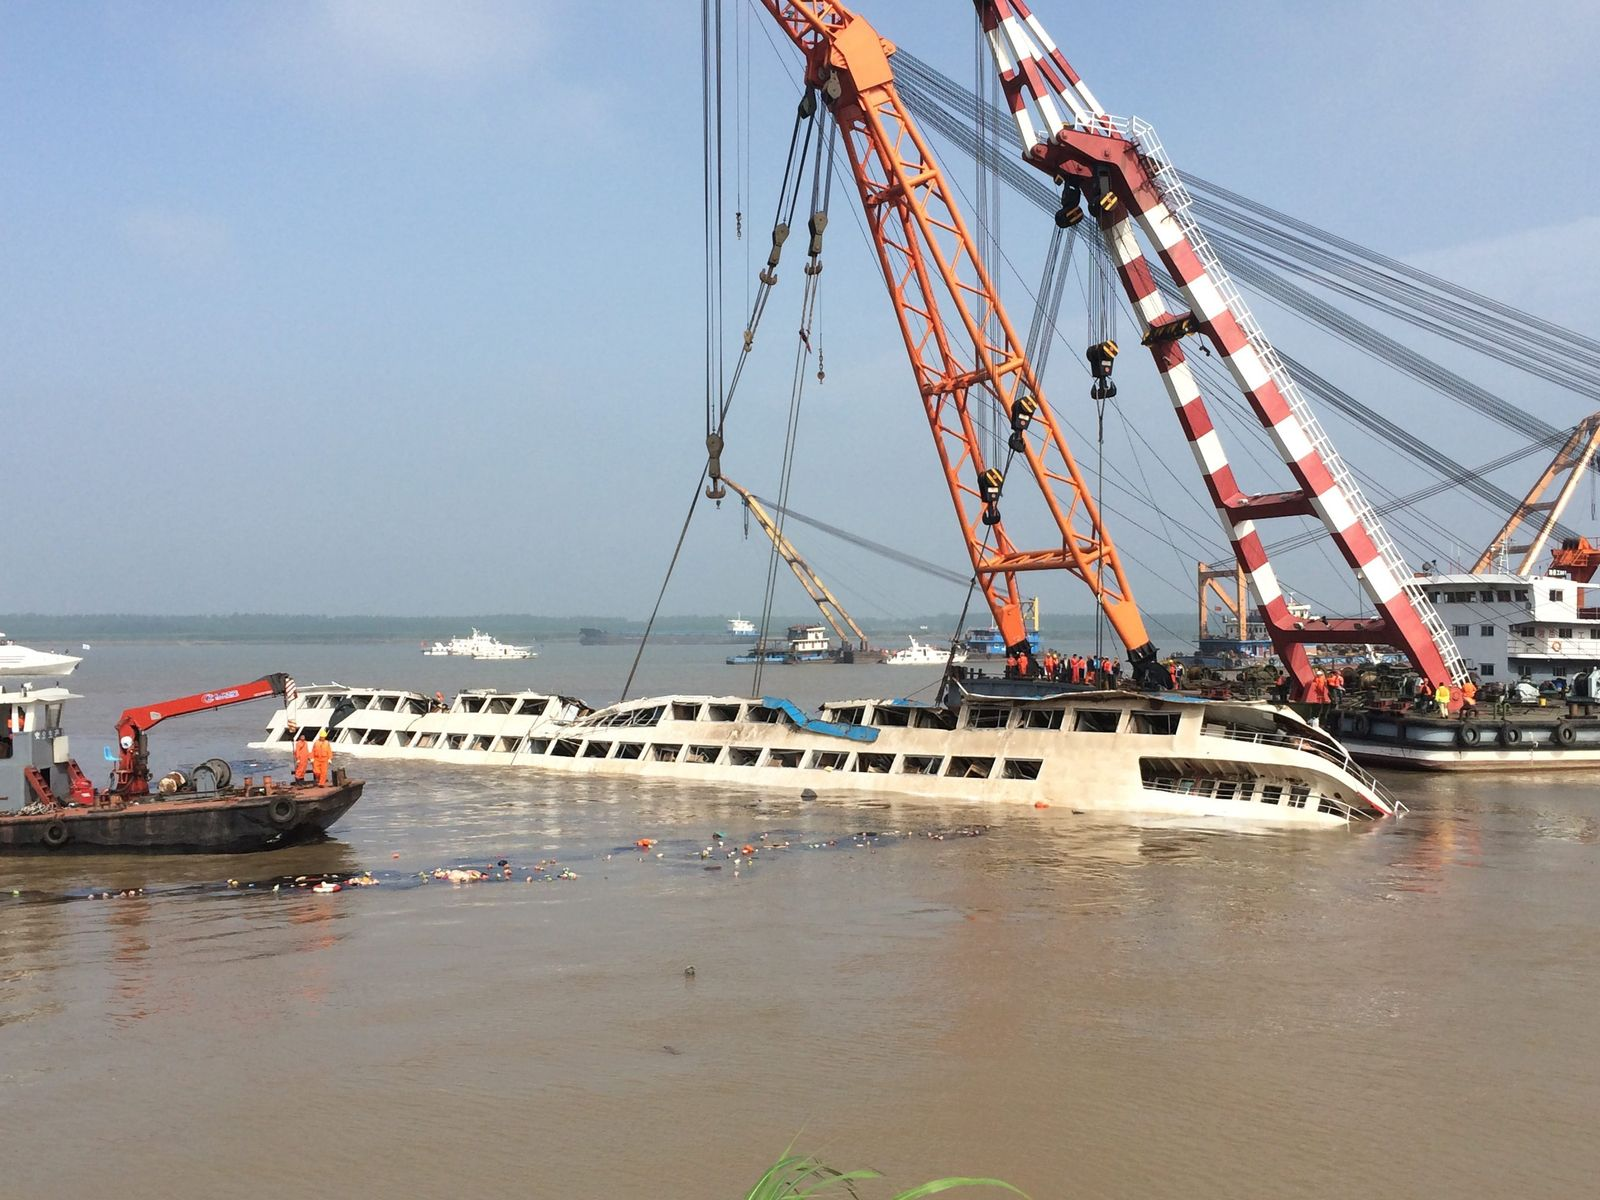 Salvage workers attempt to right capsized Chinese cruise ship